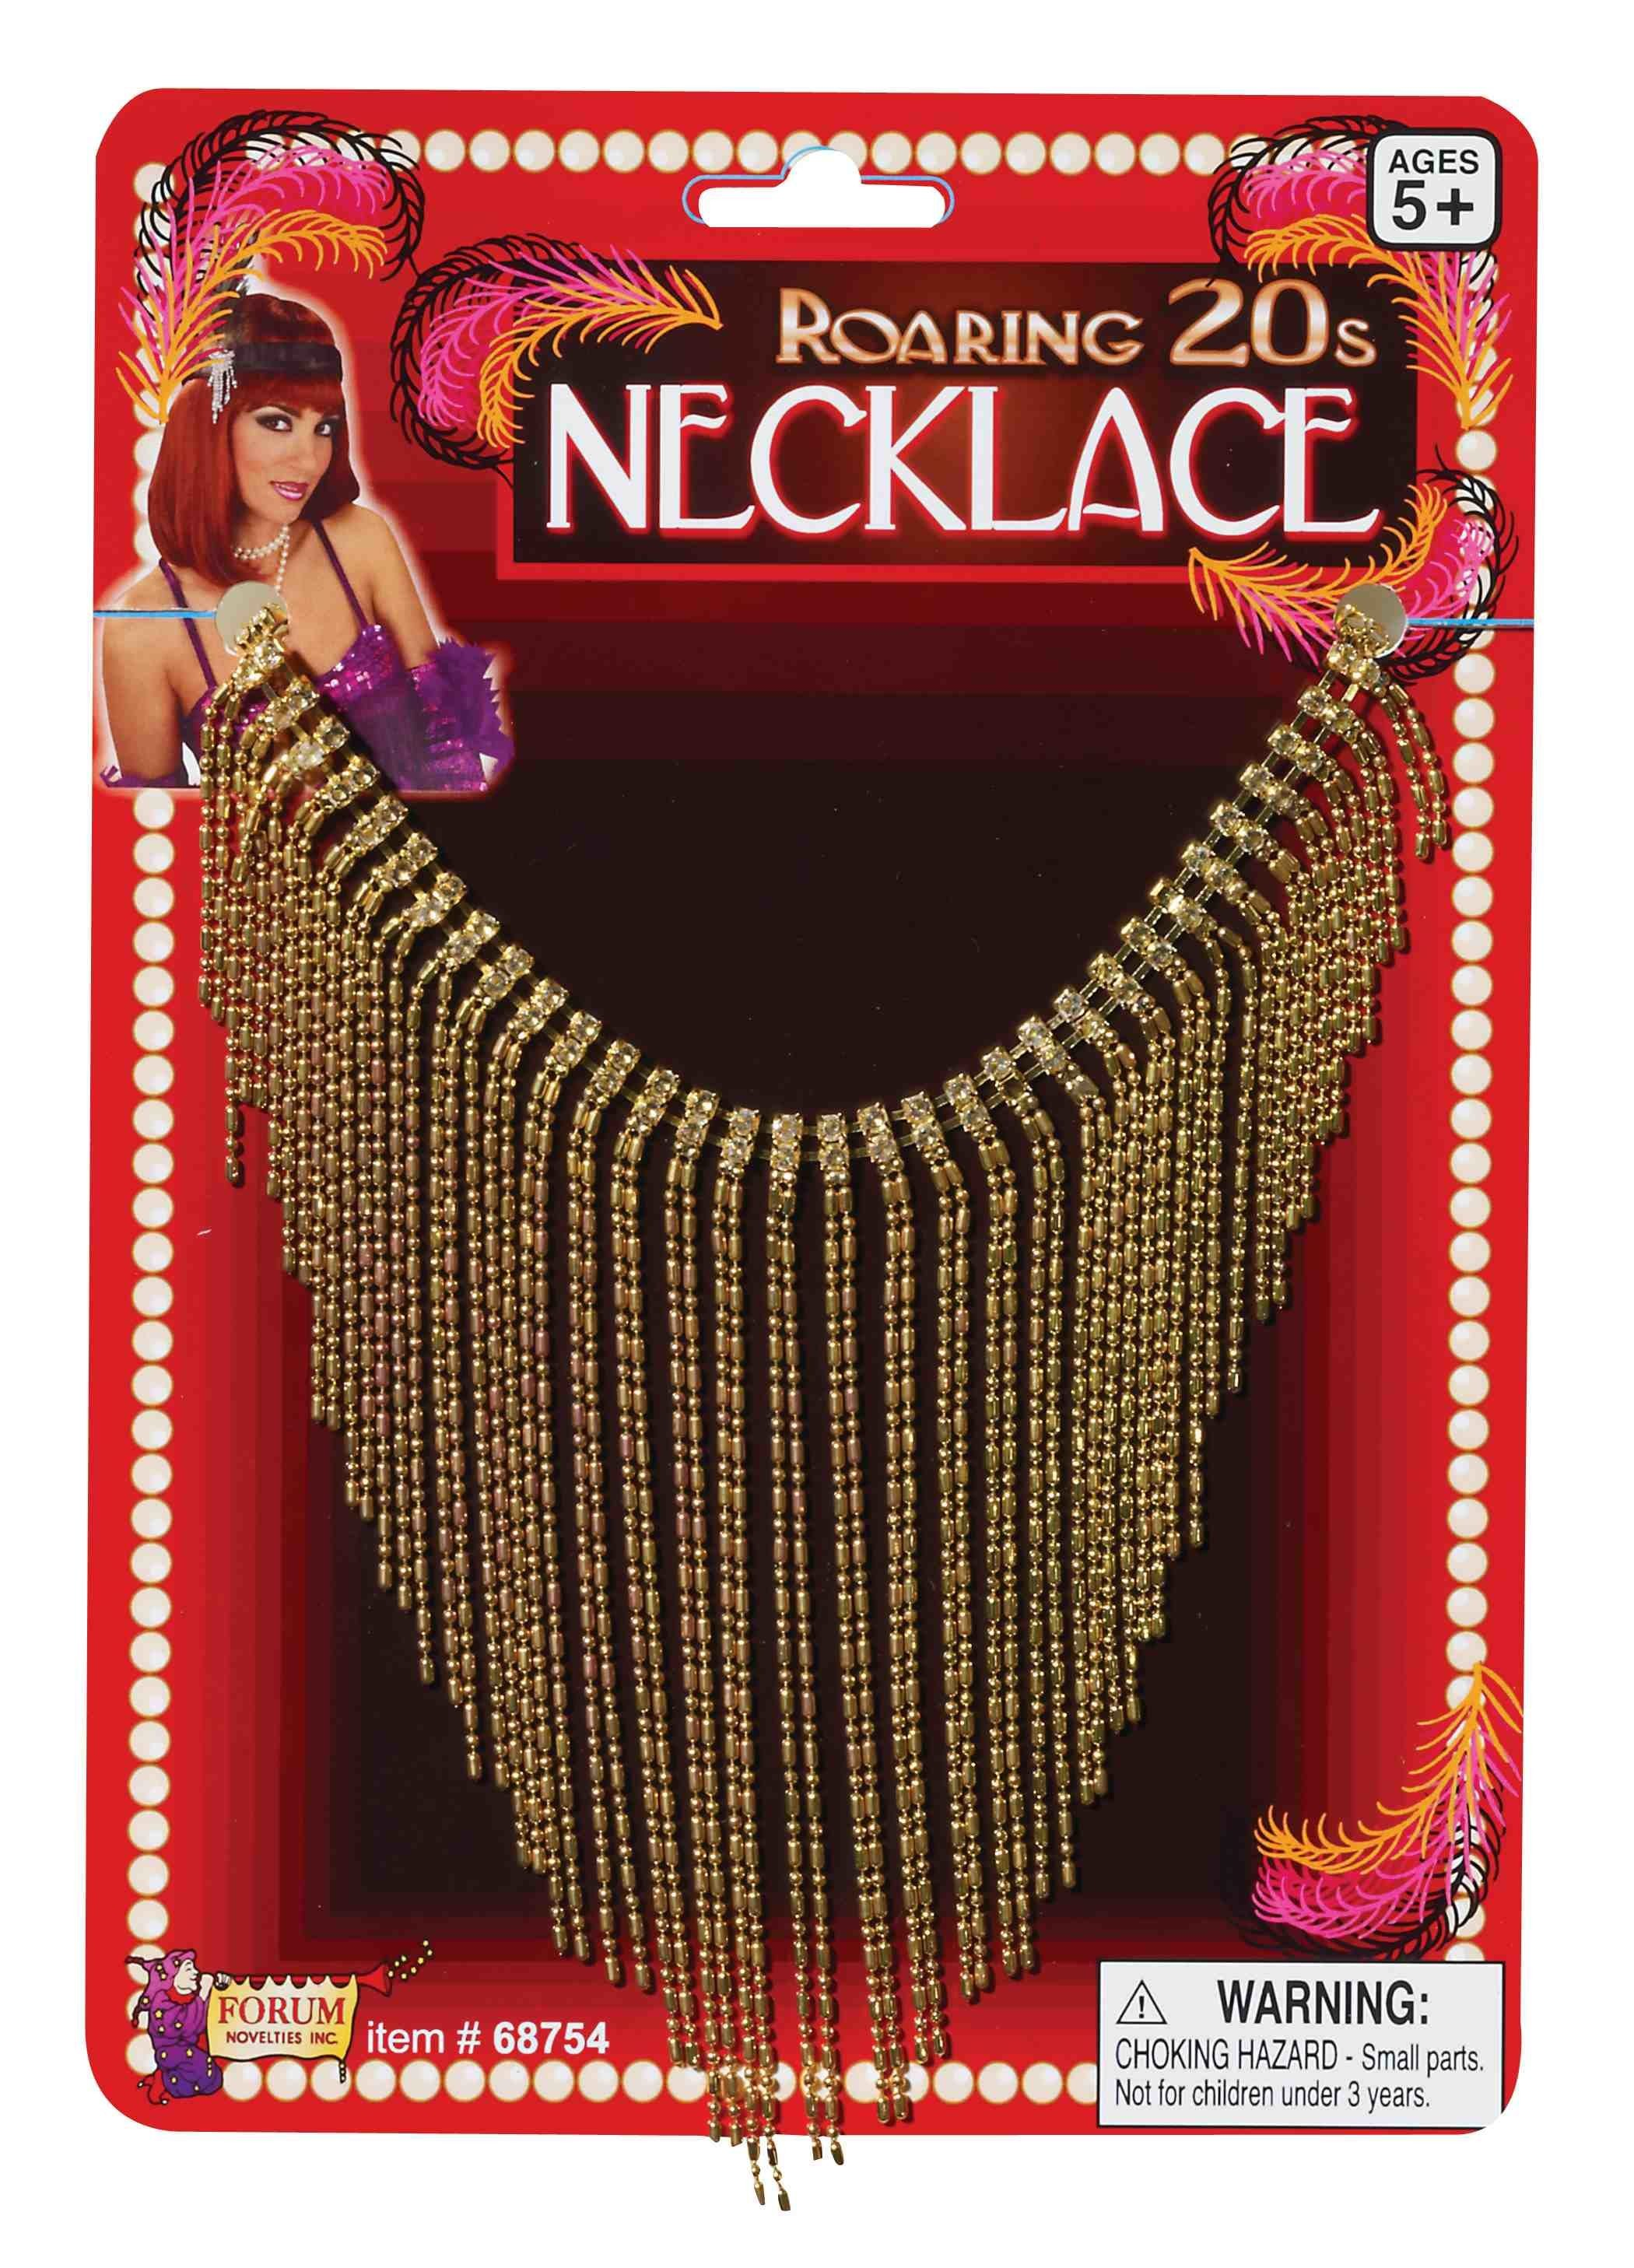 1920's Flapper style necklace